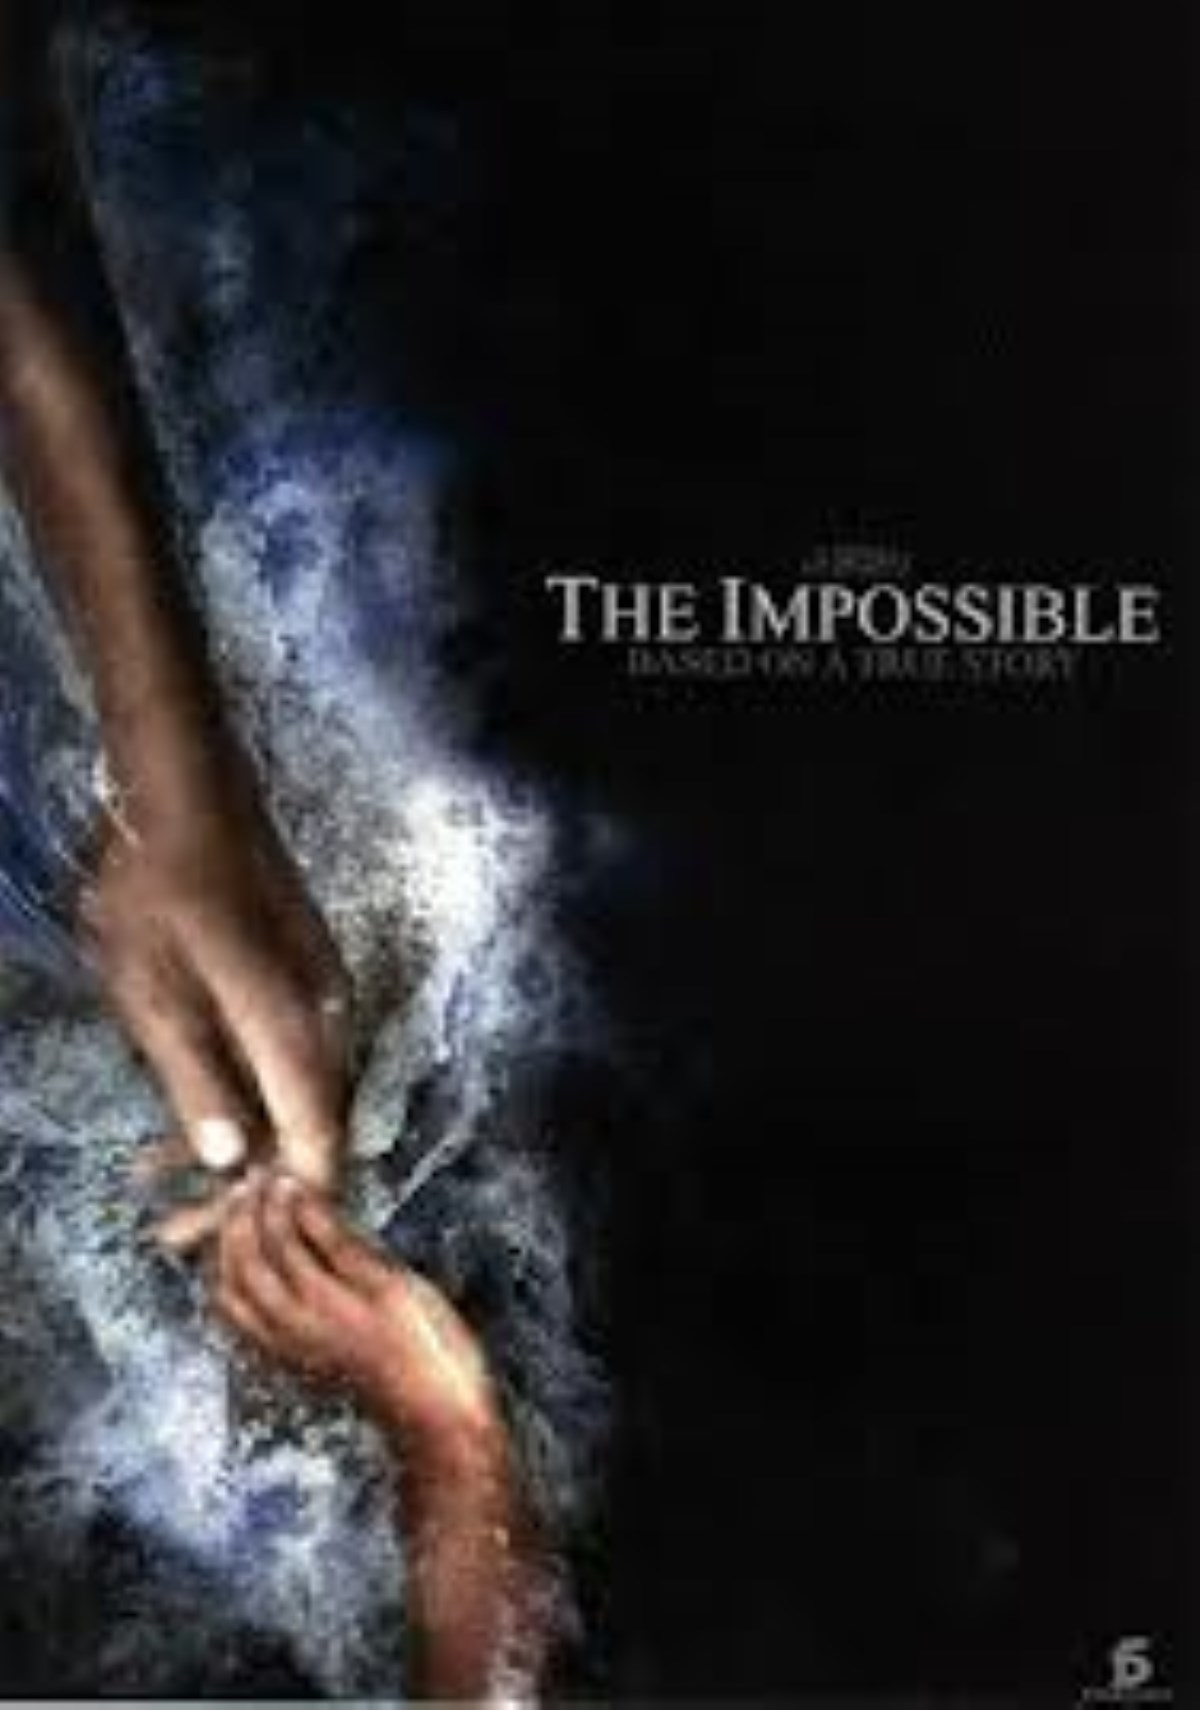 غیر ممکن (The Impossible)